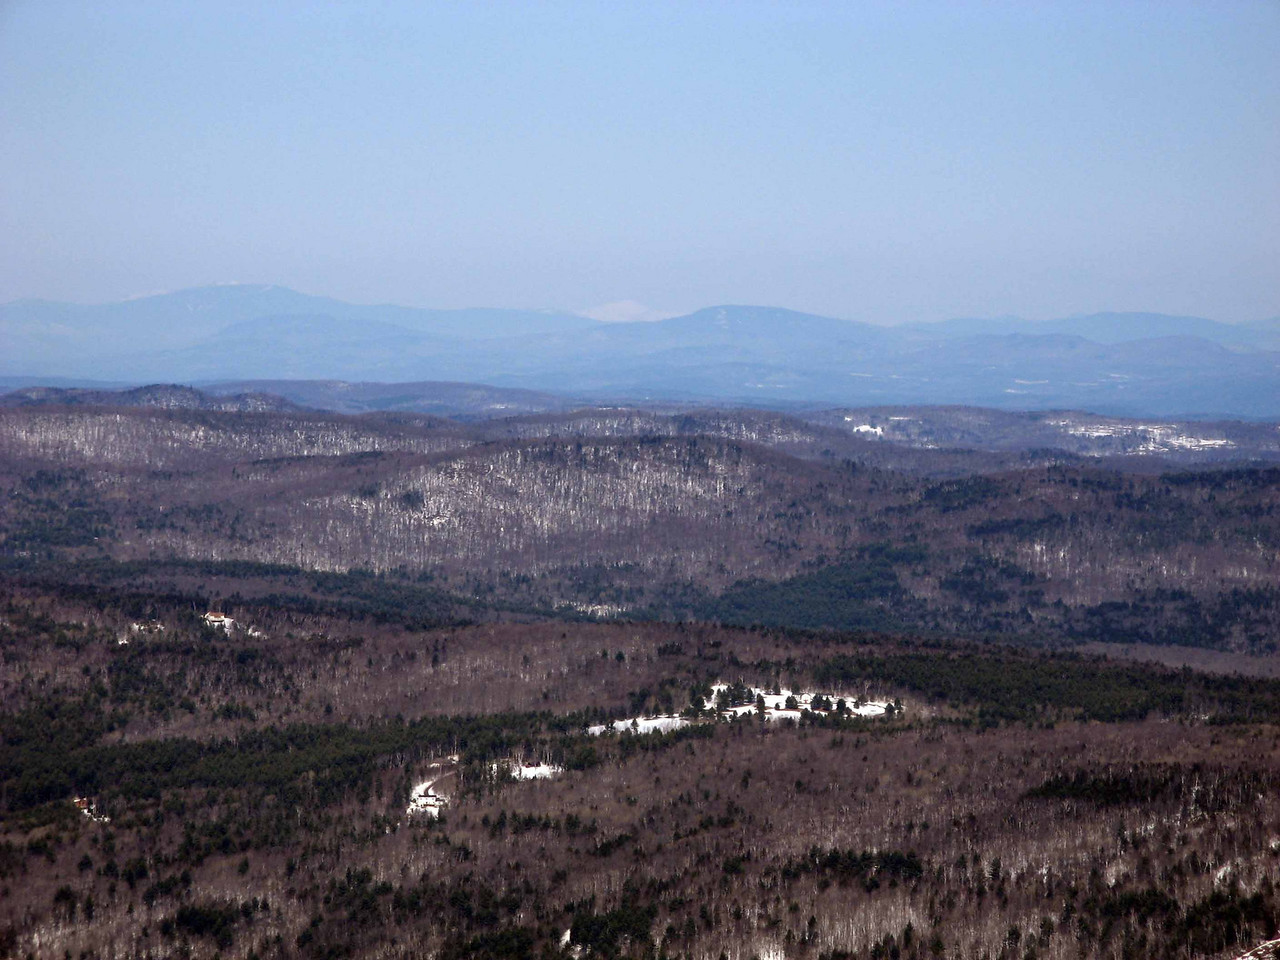 50a Enhancing, sure looks like Mt Washington 90 miles distant